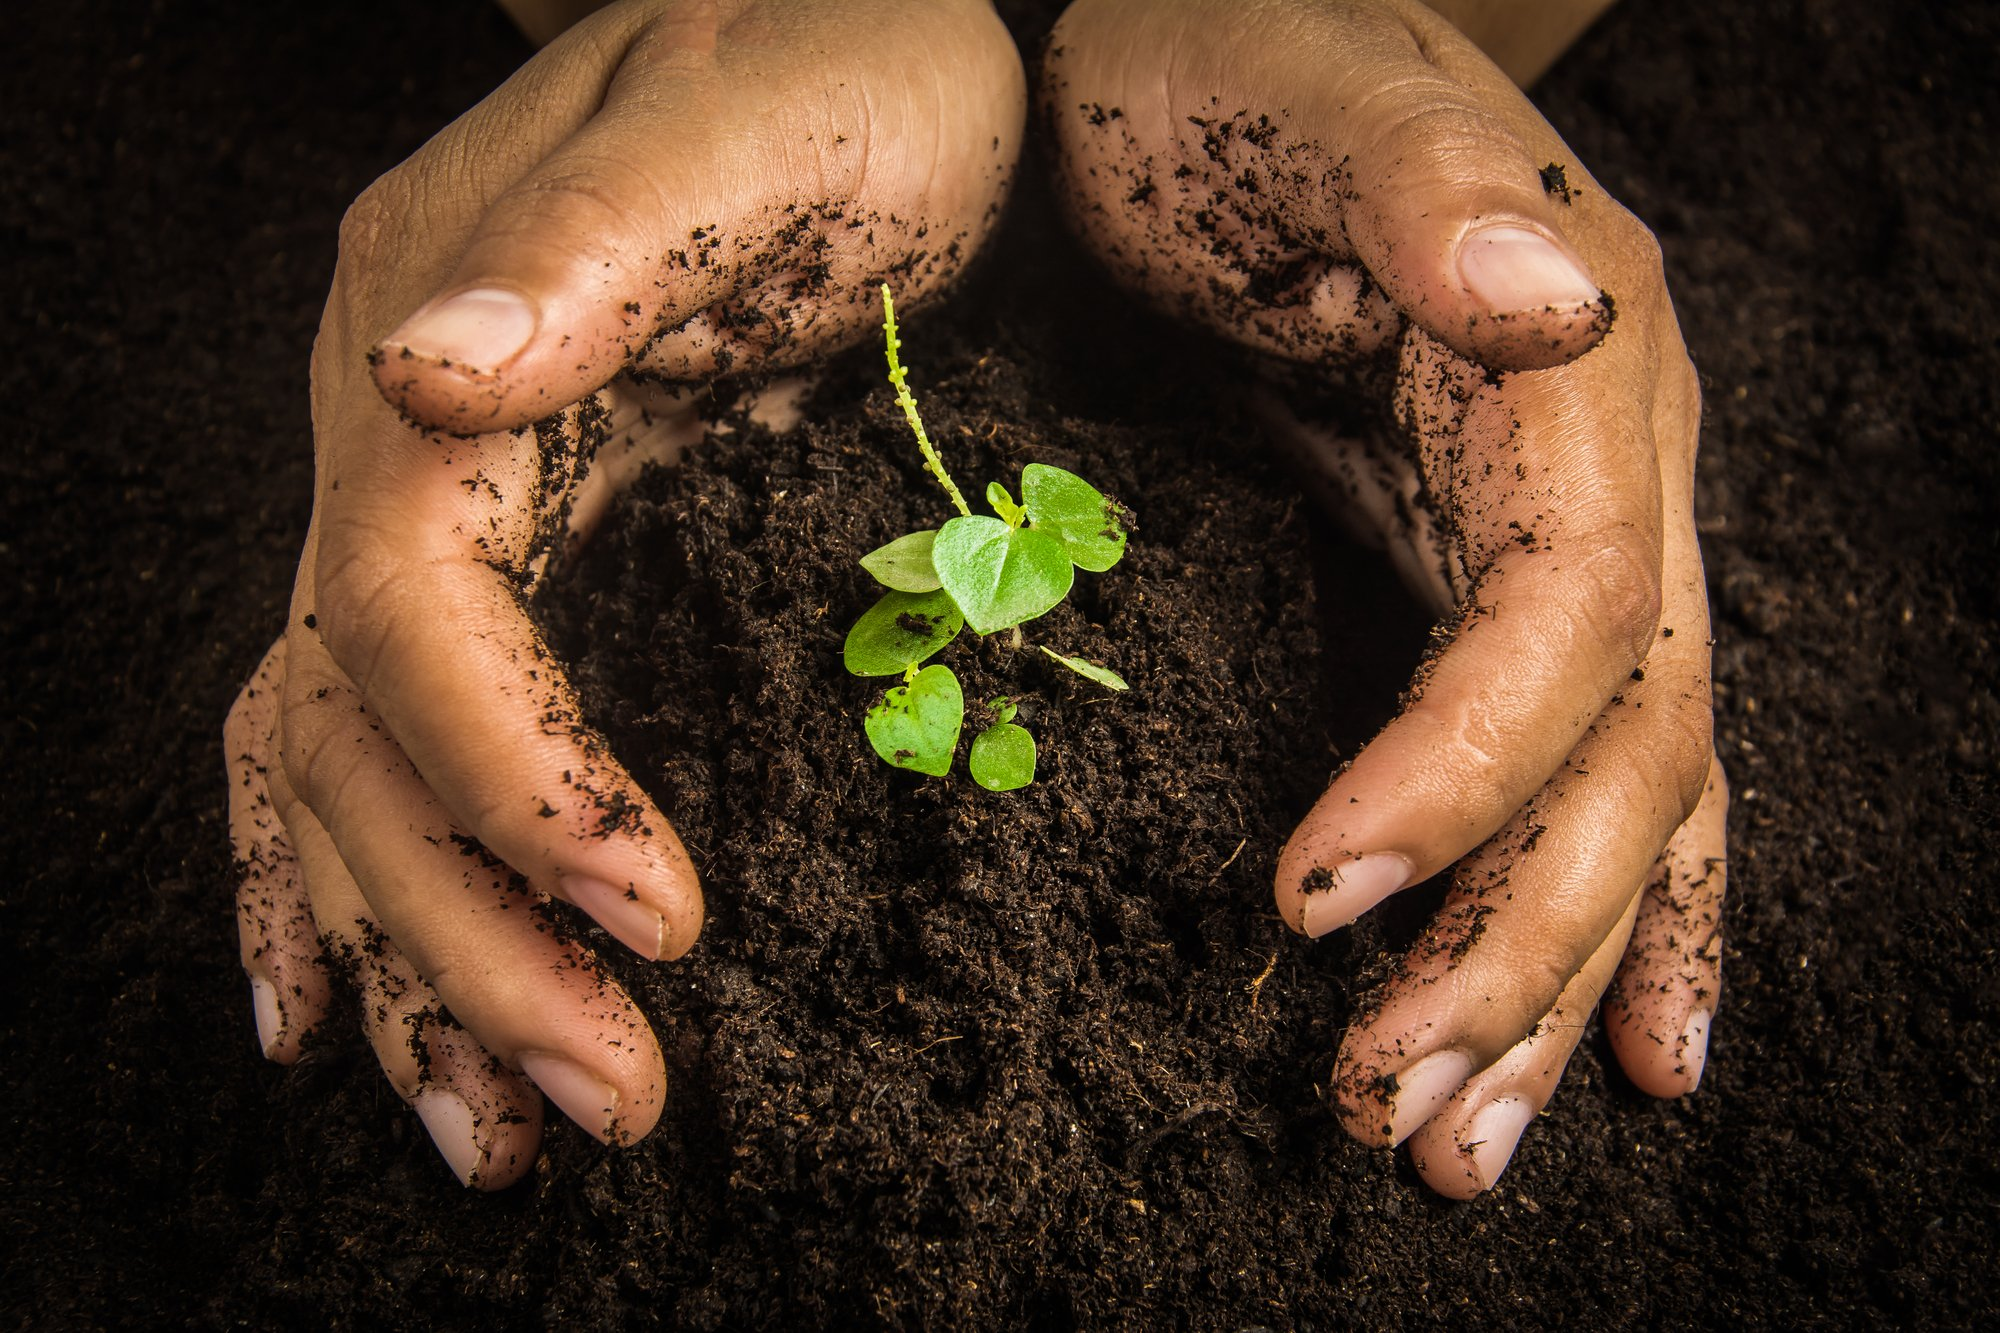 Woman's hands holding a pile of soil